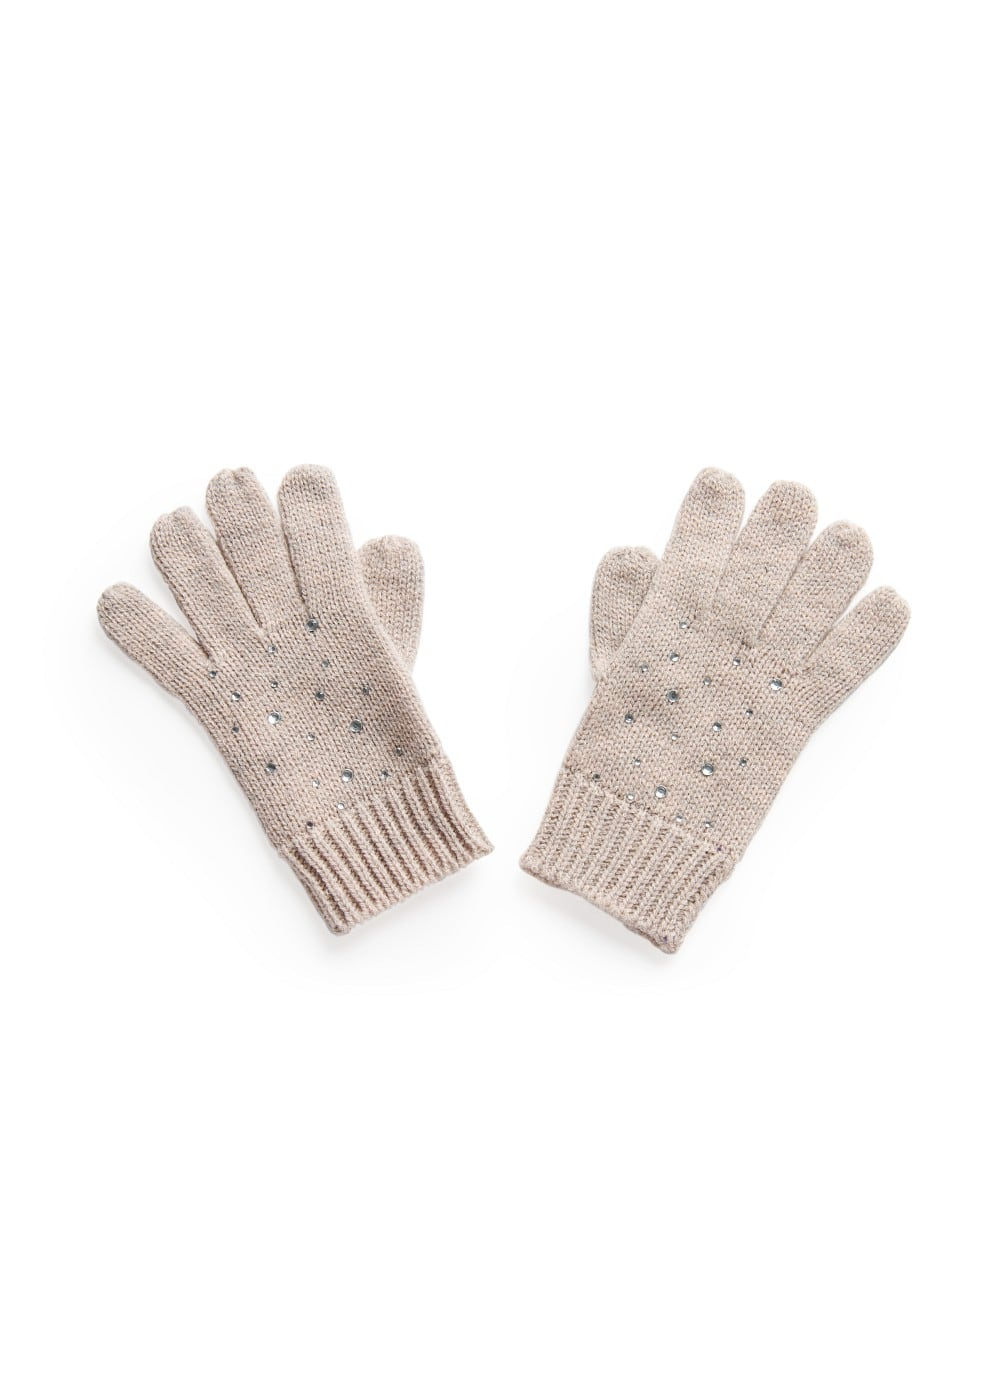 Rhinestones knit gloves